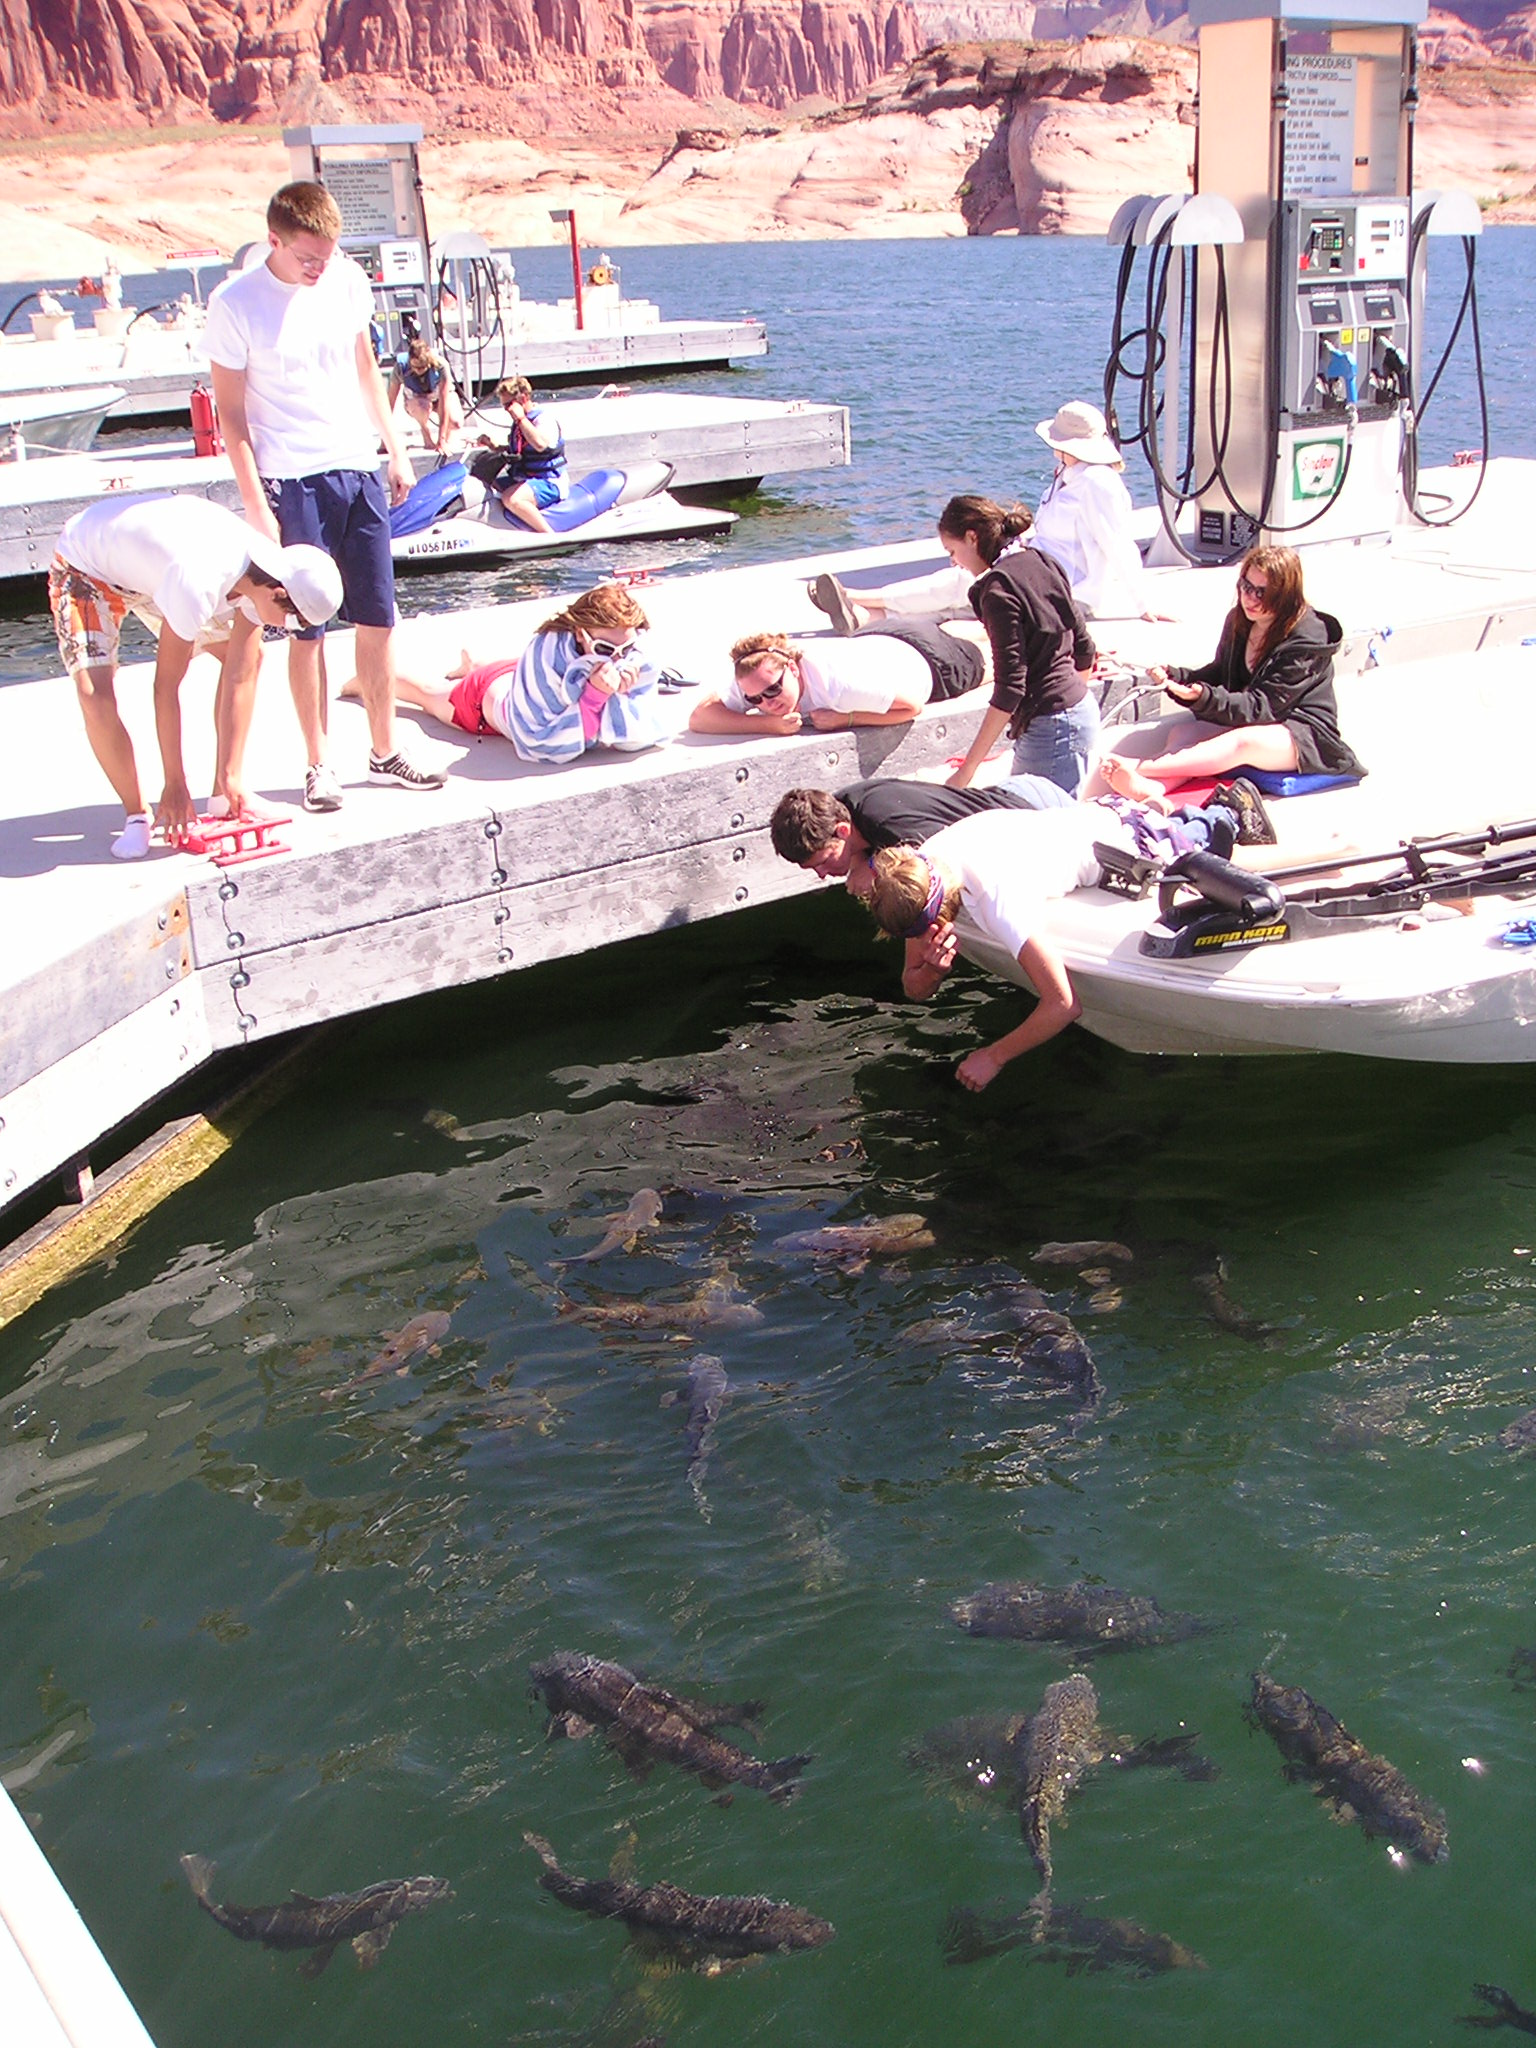 Lake powell information and facts about fish and fishing for Best fishing in arizona